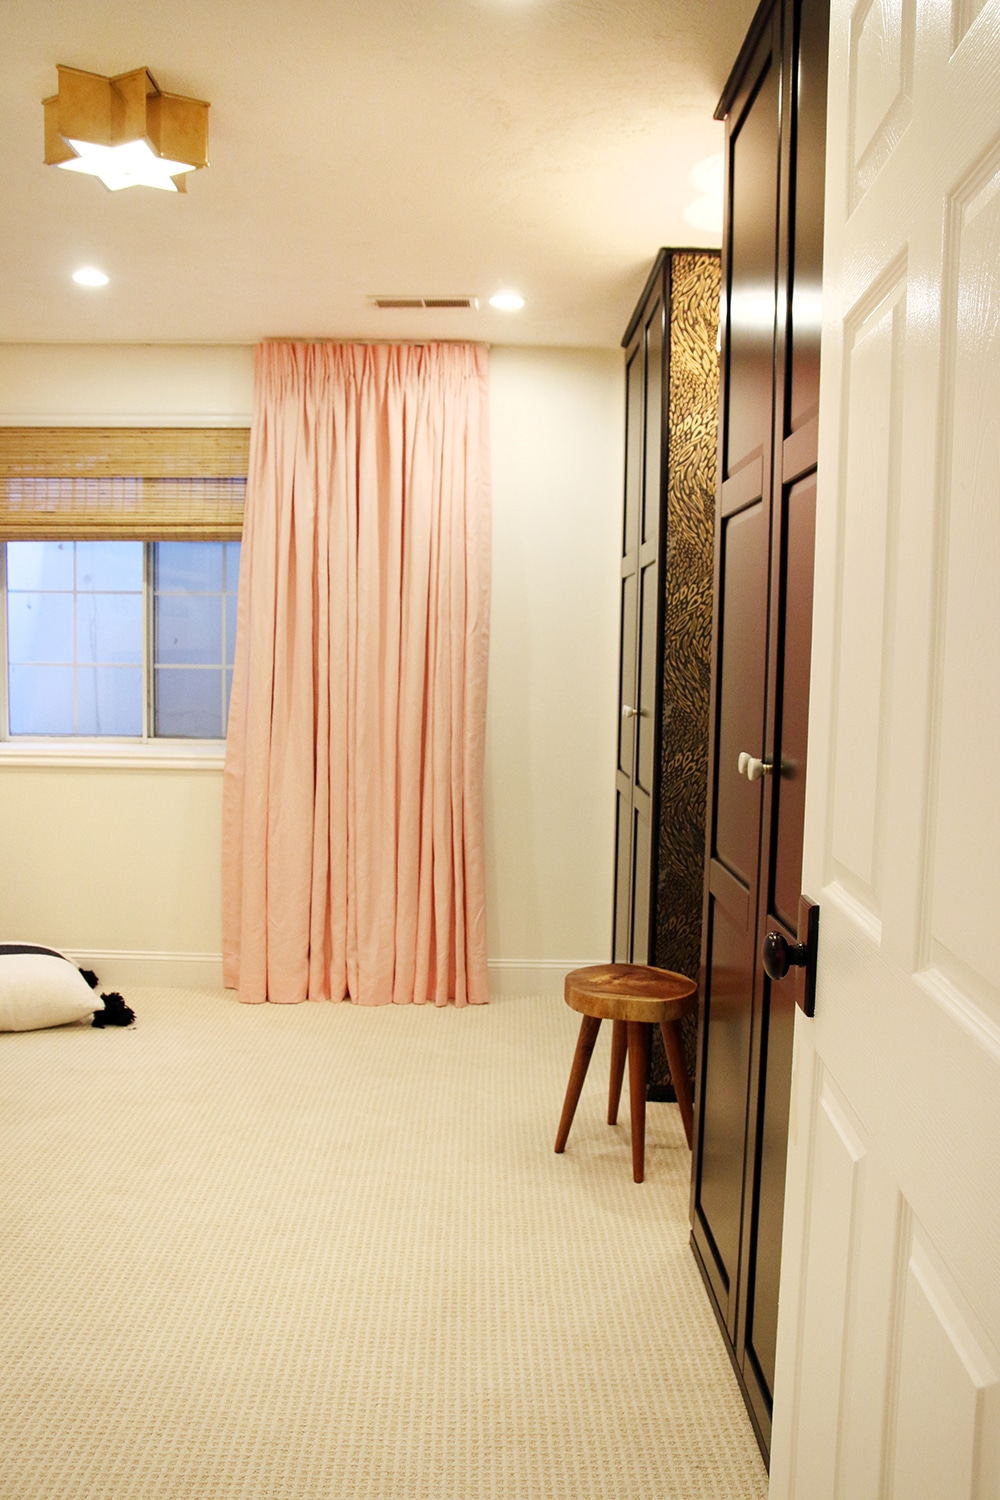 Floor To Ceiling Pink Curtains With A Mount Rod